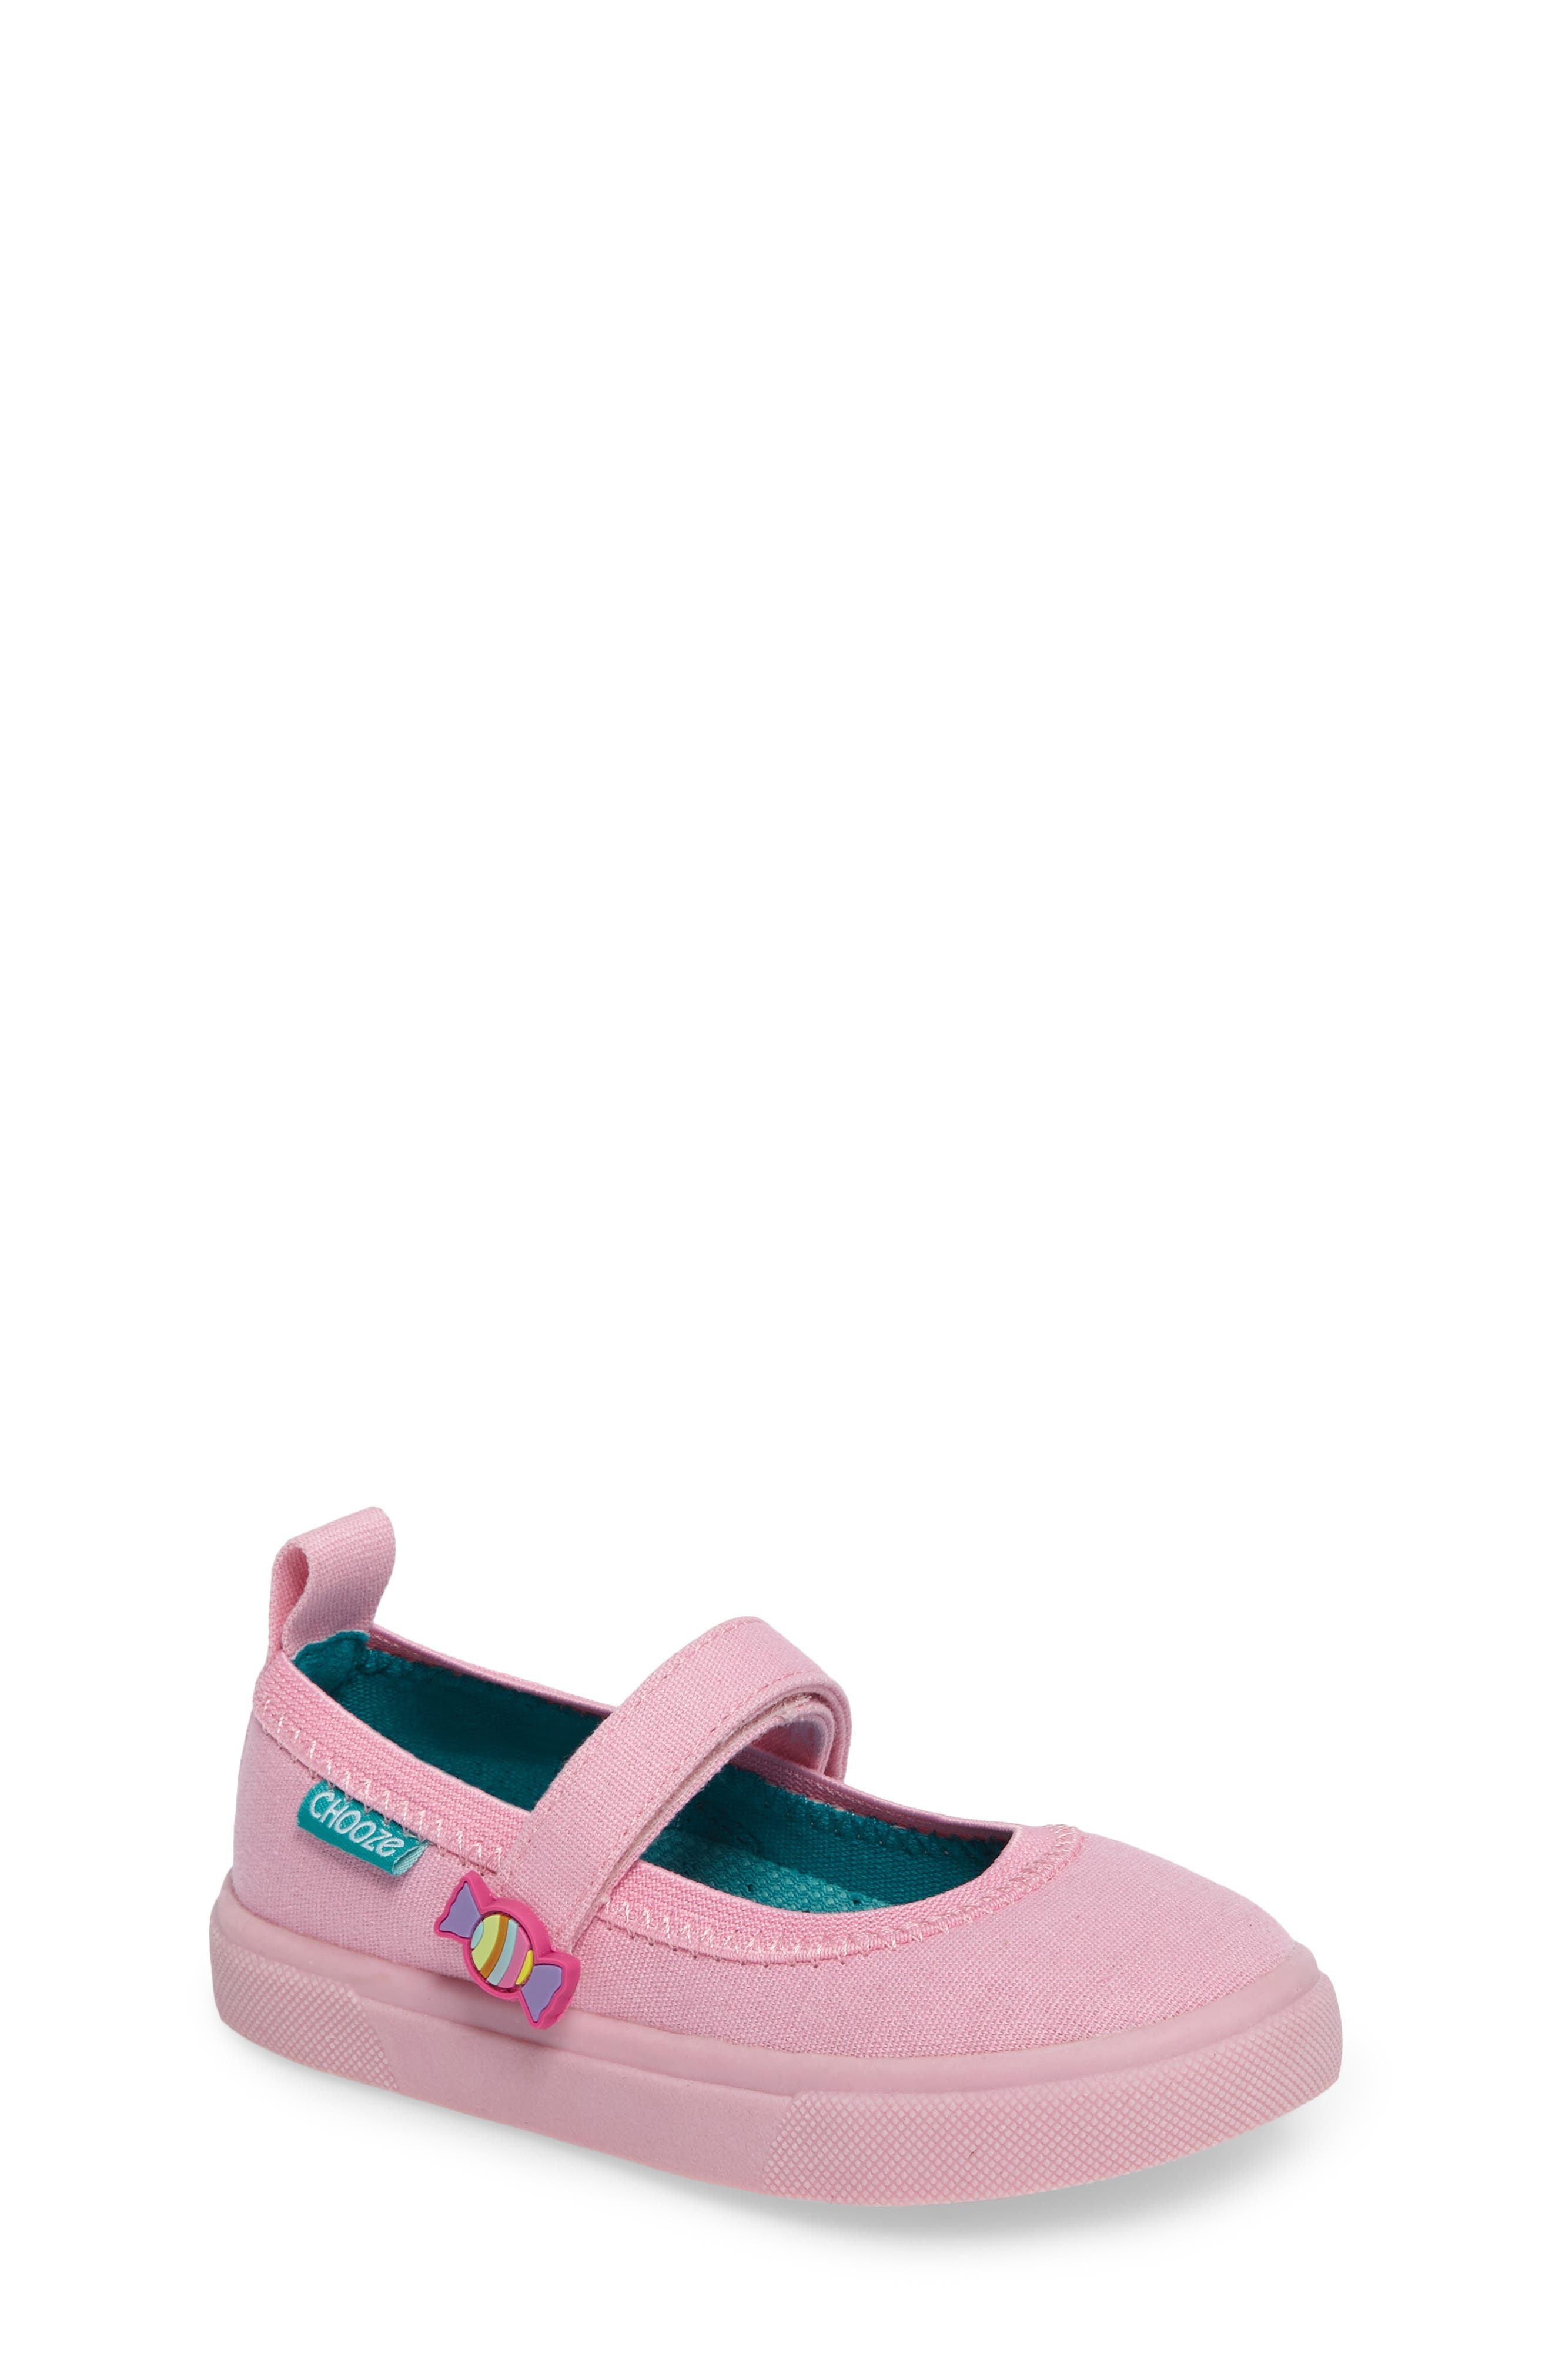 Alternate Image 1 Selected - CHOOZE Skip Mary Jane Sneaker (Toddler)